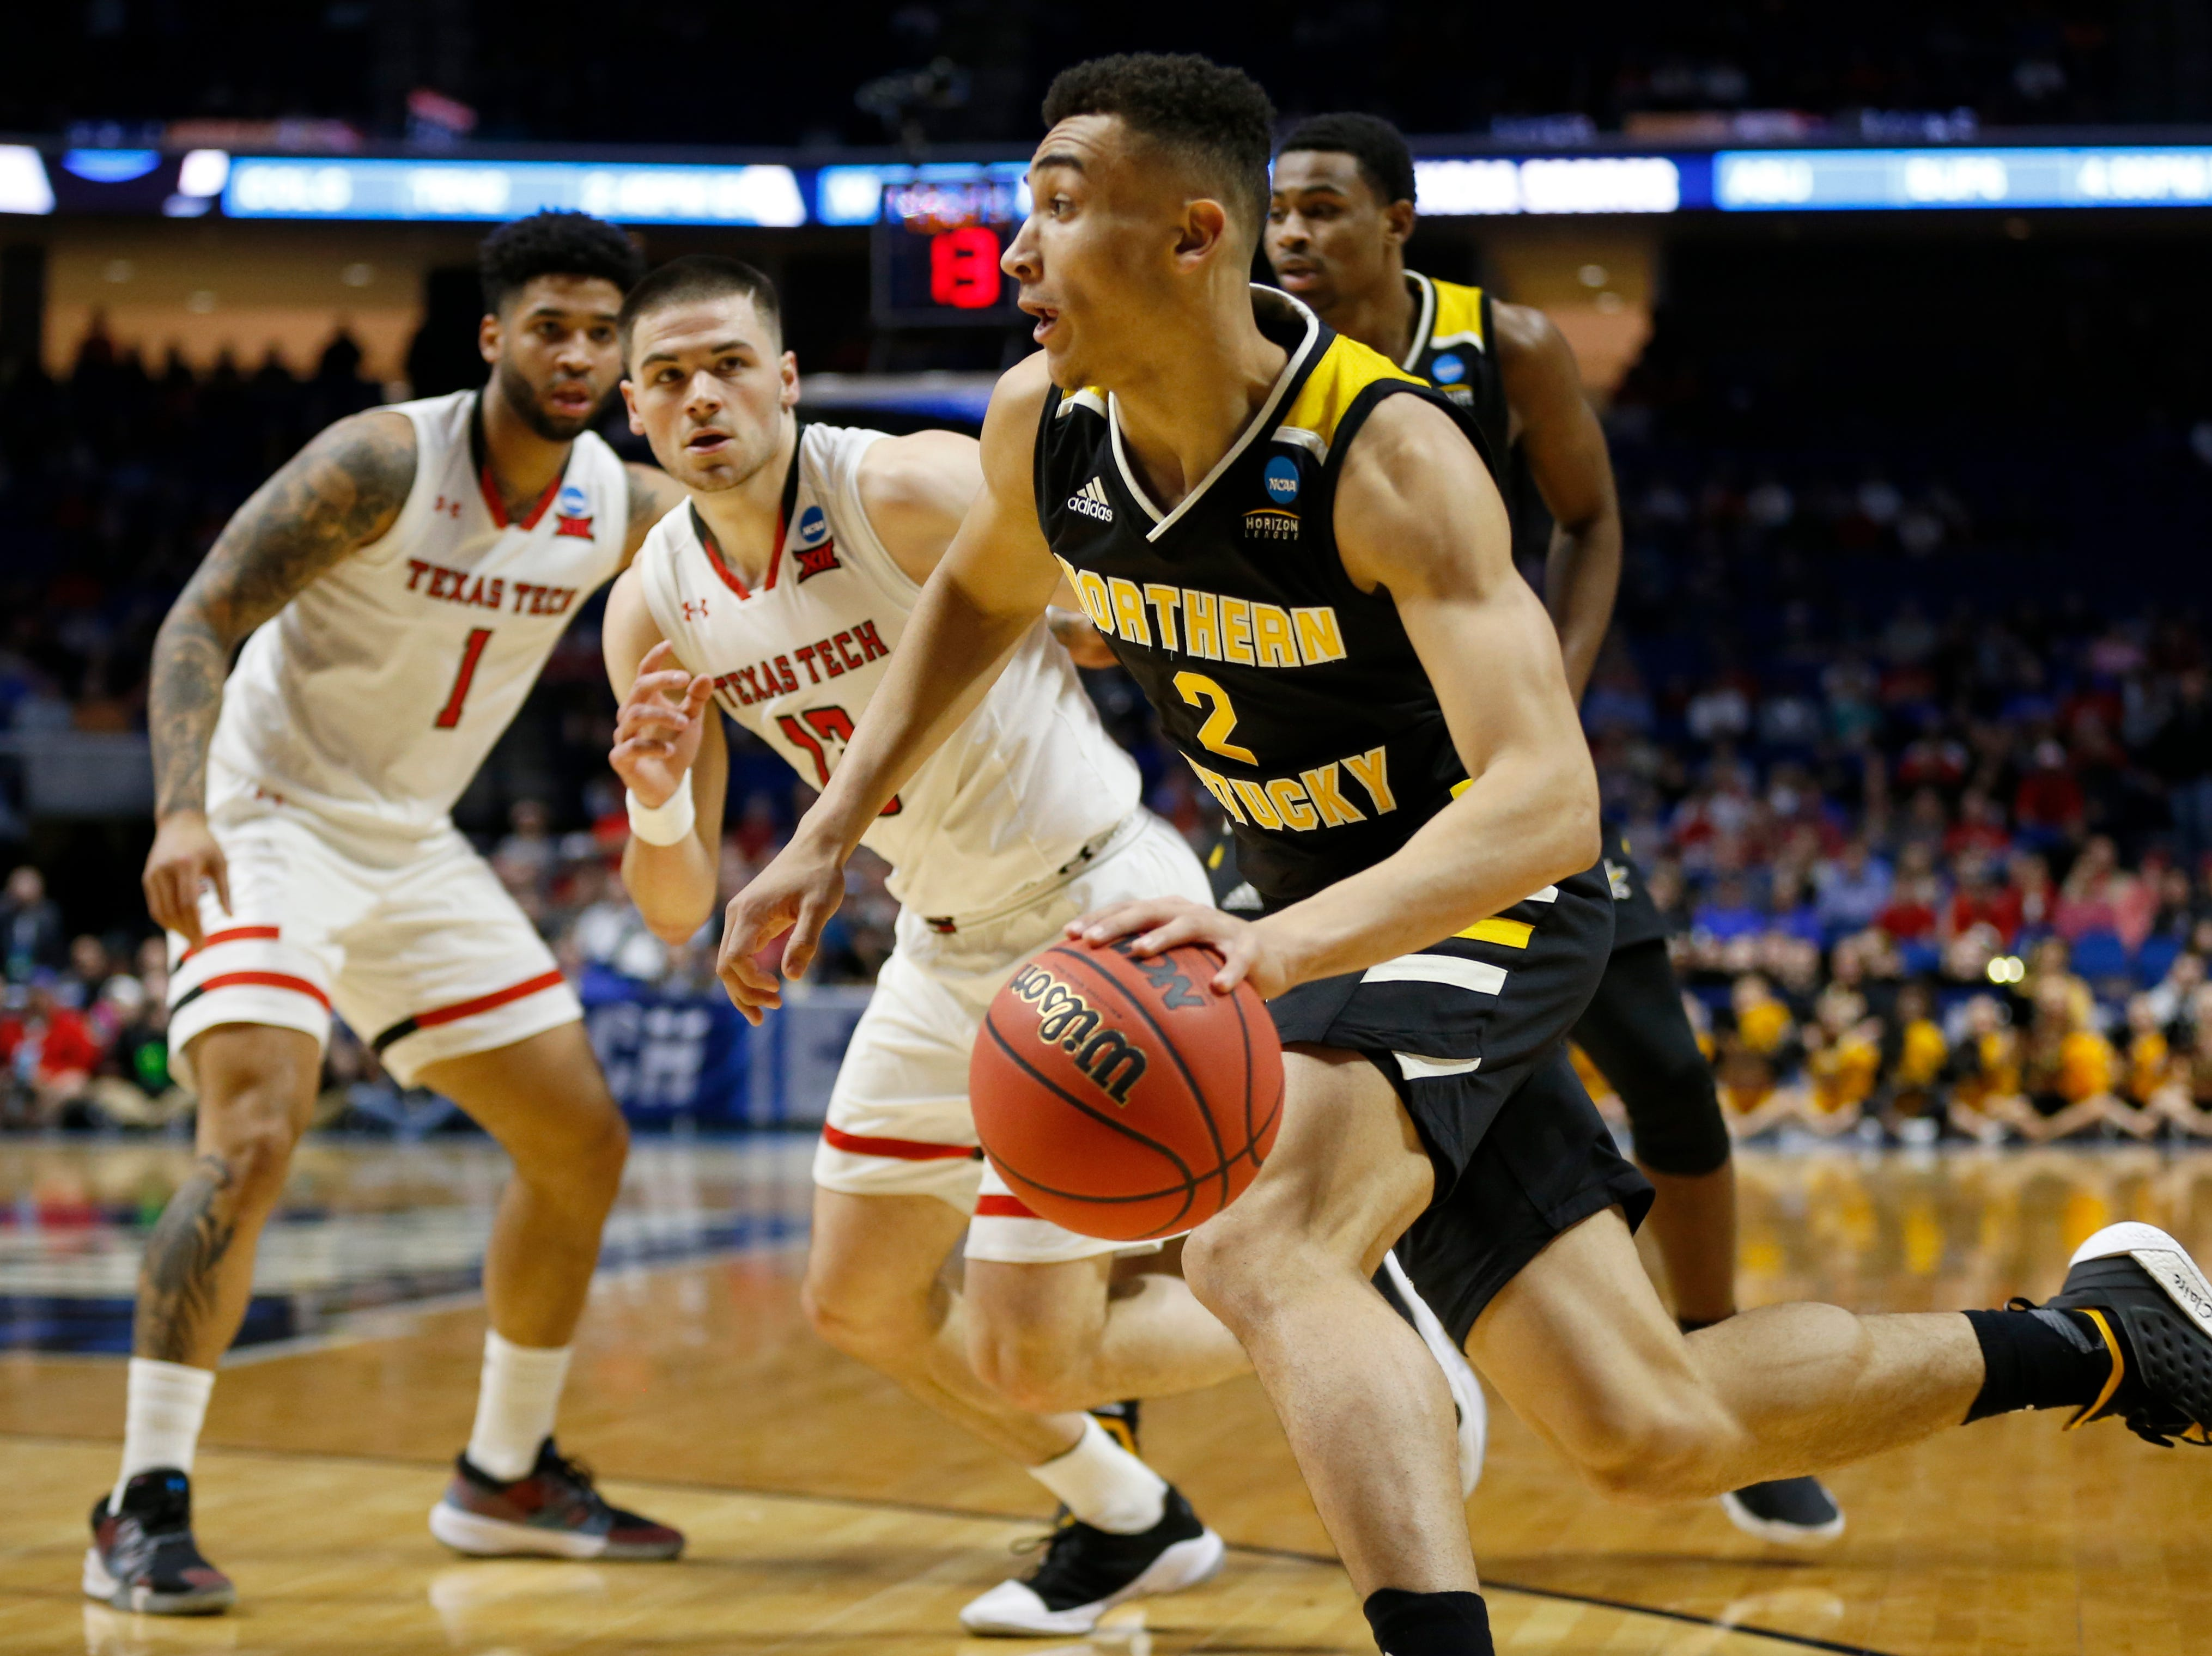 Northern Kentucky Norse guard Paul Djoko (2) drives to the basket in the first half of the NCAA Tournament First Round game between the 14-seeded Northern Kentucky Norse and the 3-seeded Texas Tech Red Raiders the BOK Center in downtown Tulsa on Friday, March 22, 2019. Texas Tech led 30-26 at halftime.